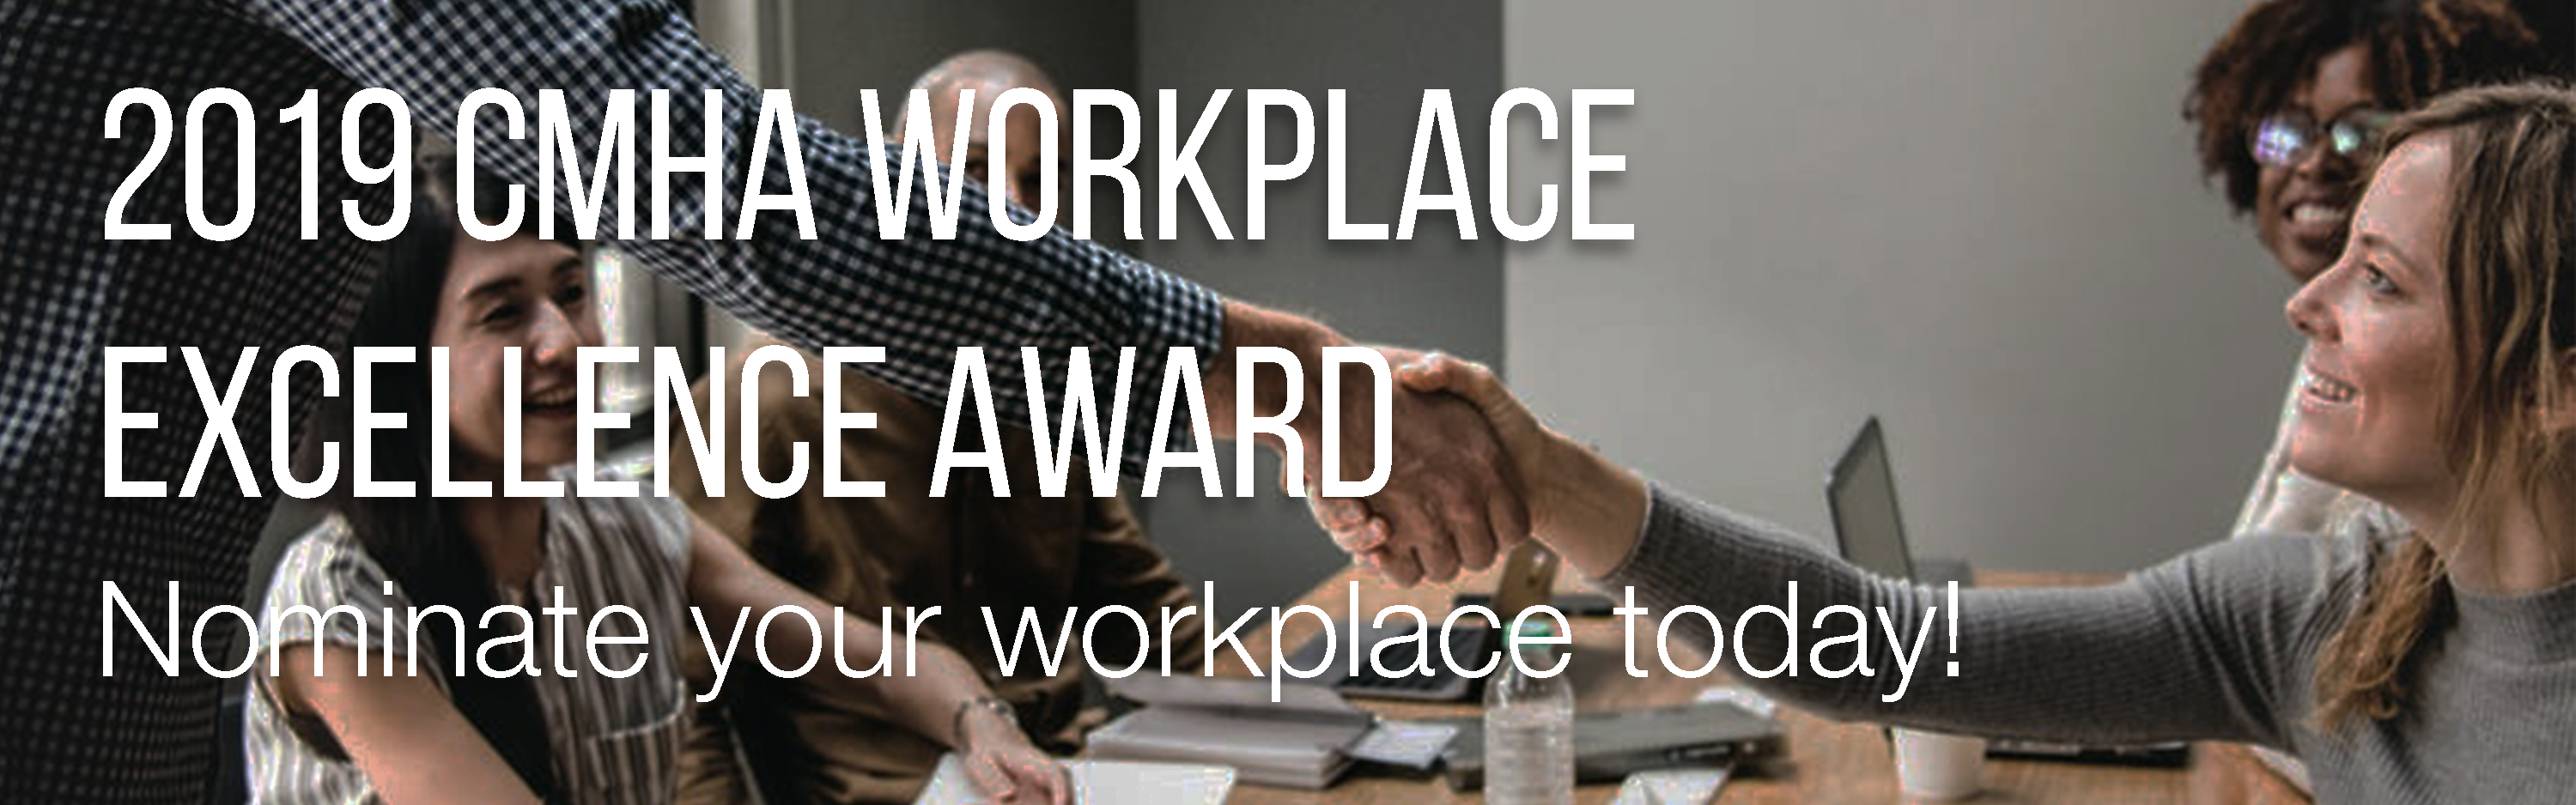 2019 CMHA Workplace Excellence Award